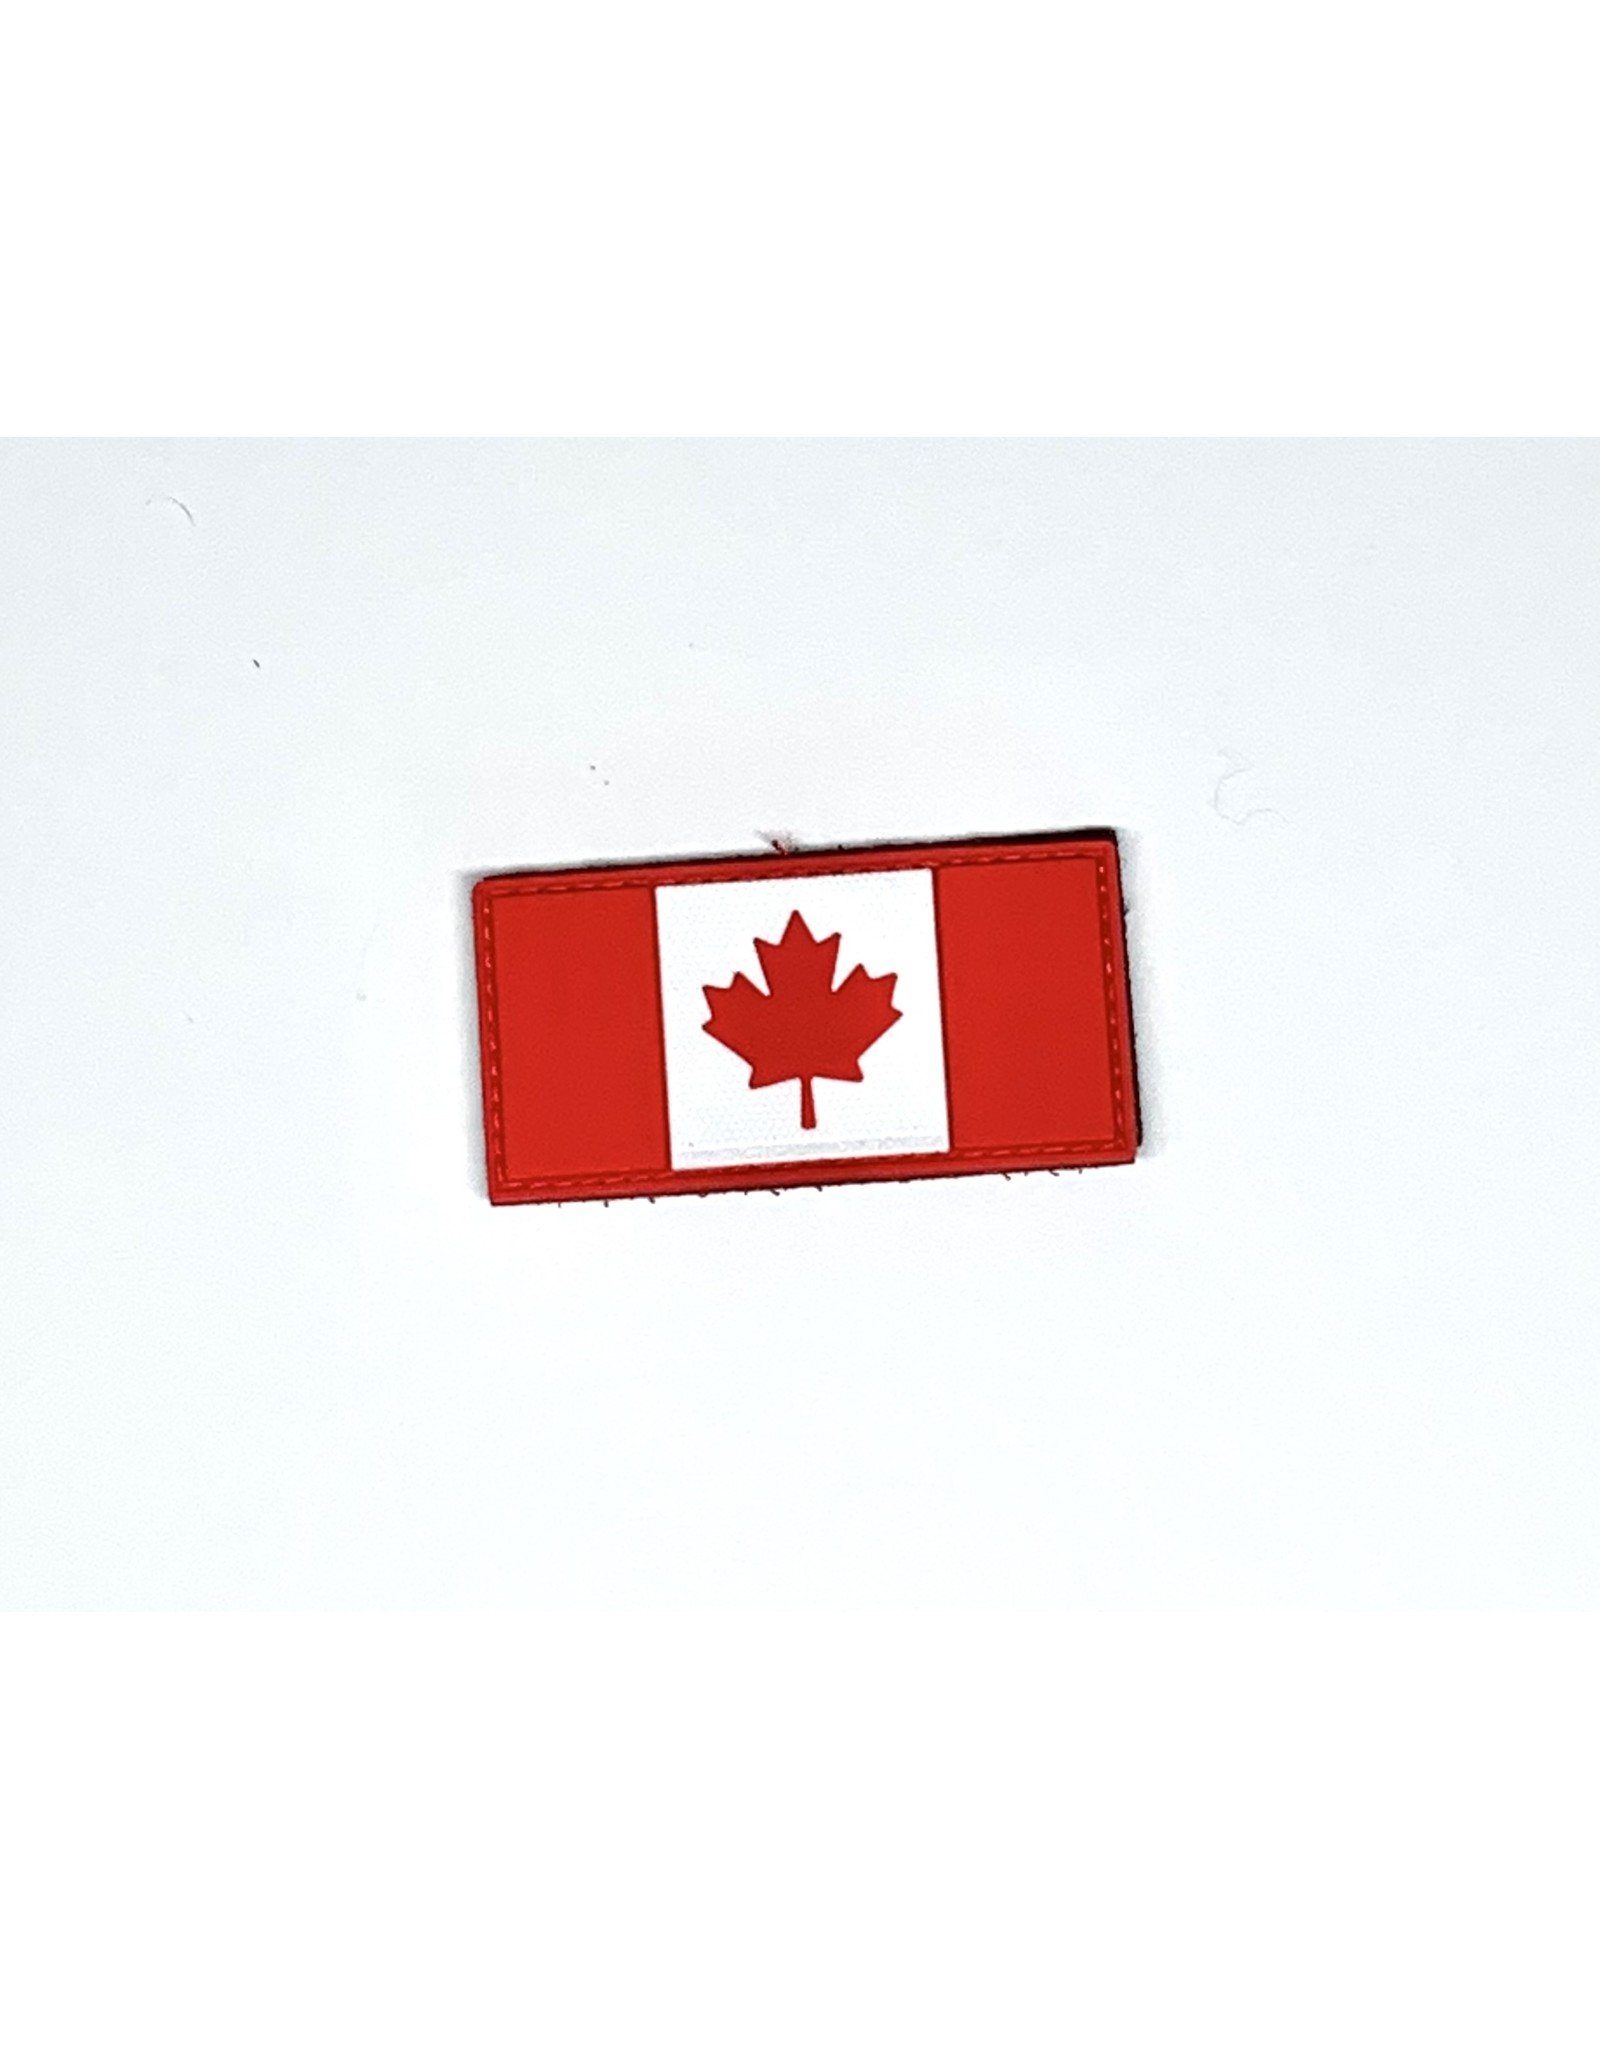 TIC Patch - Canadian Flag Red/White  1.5 x 3